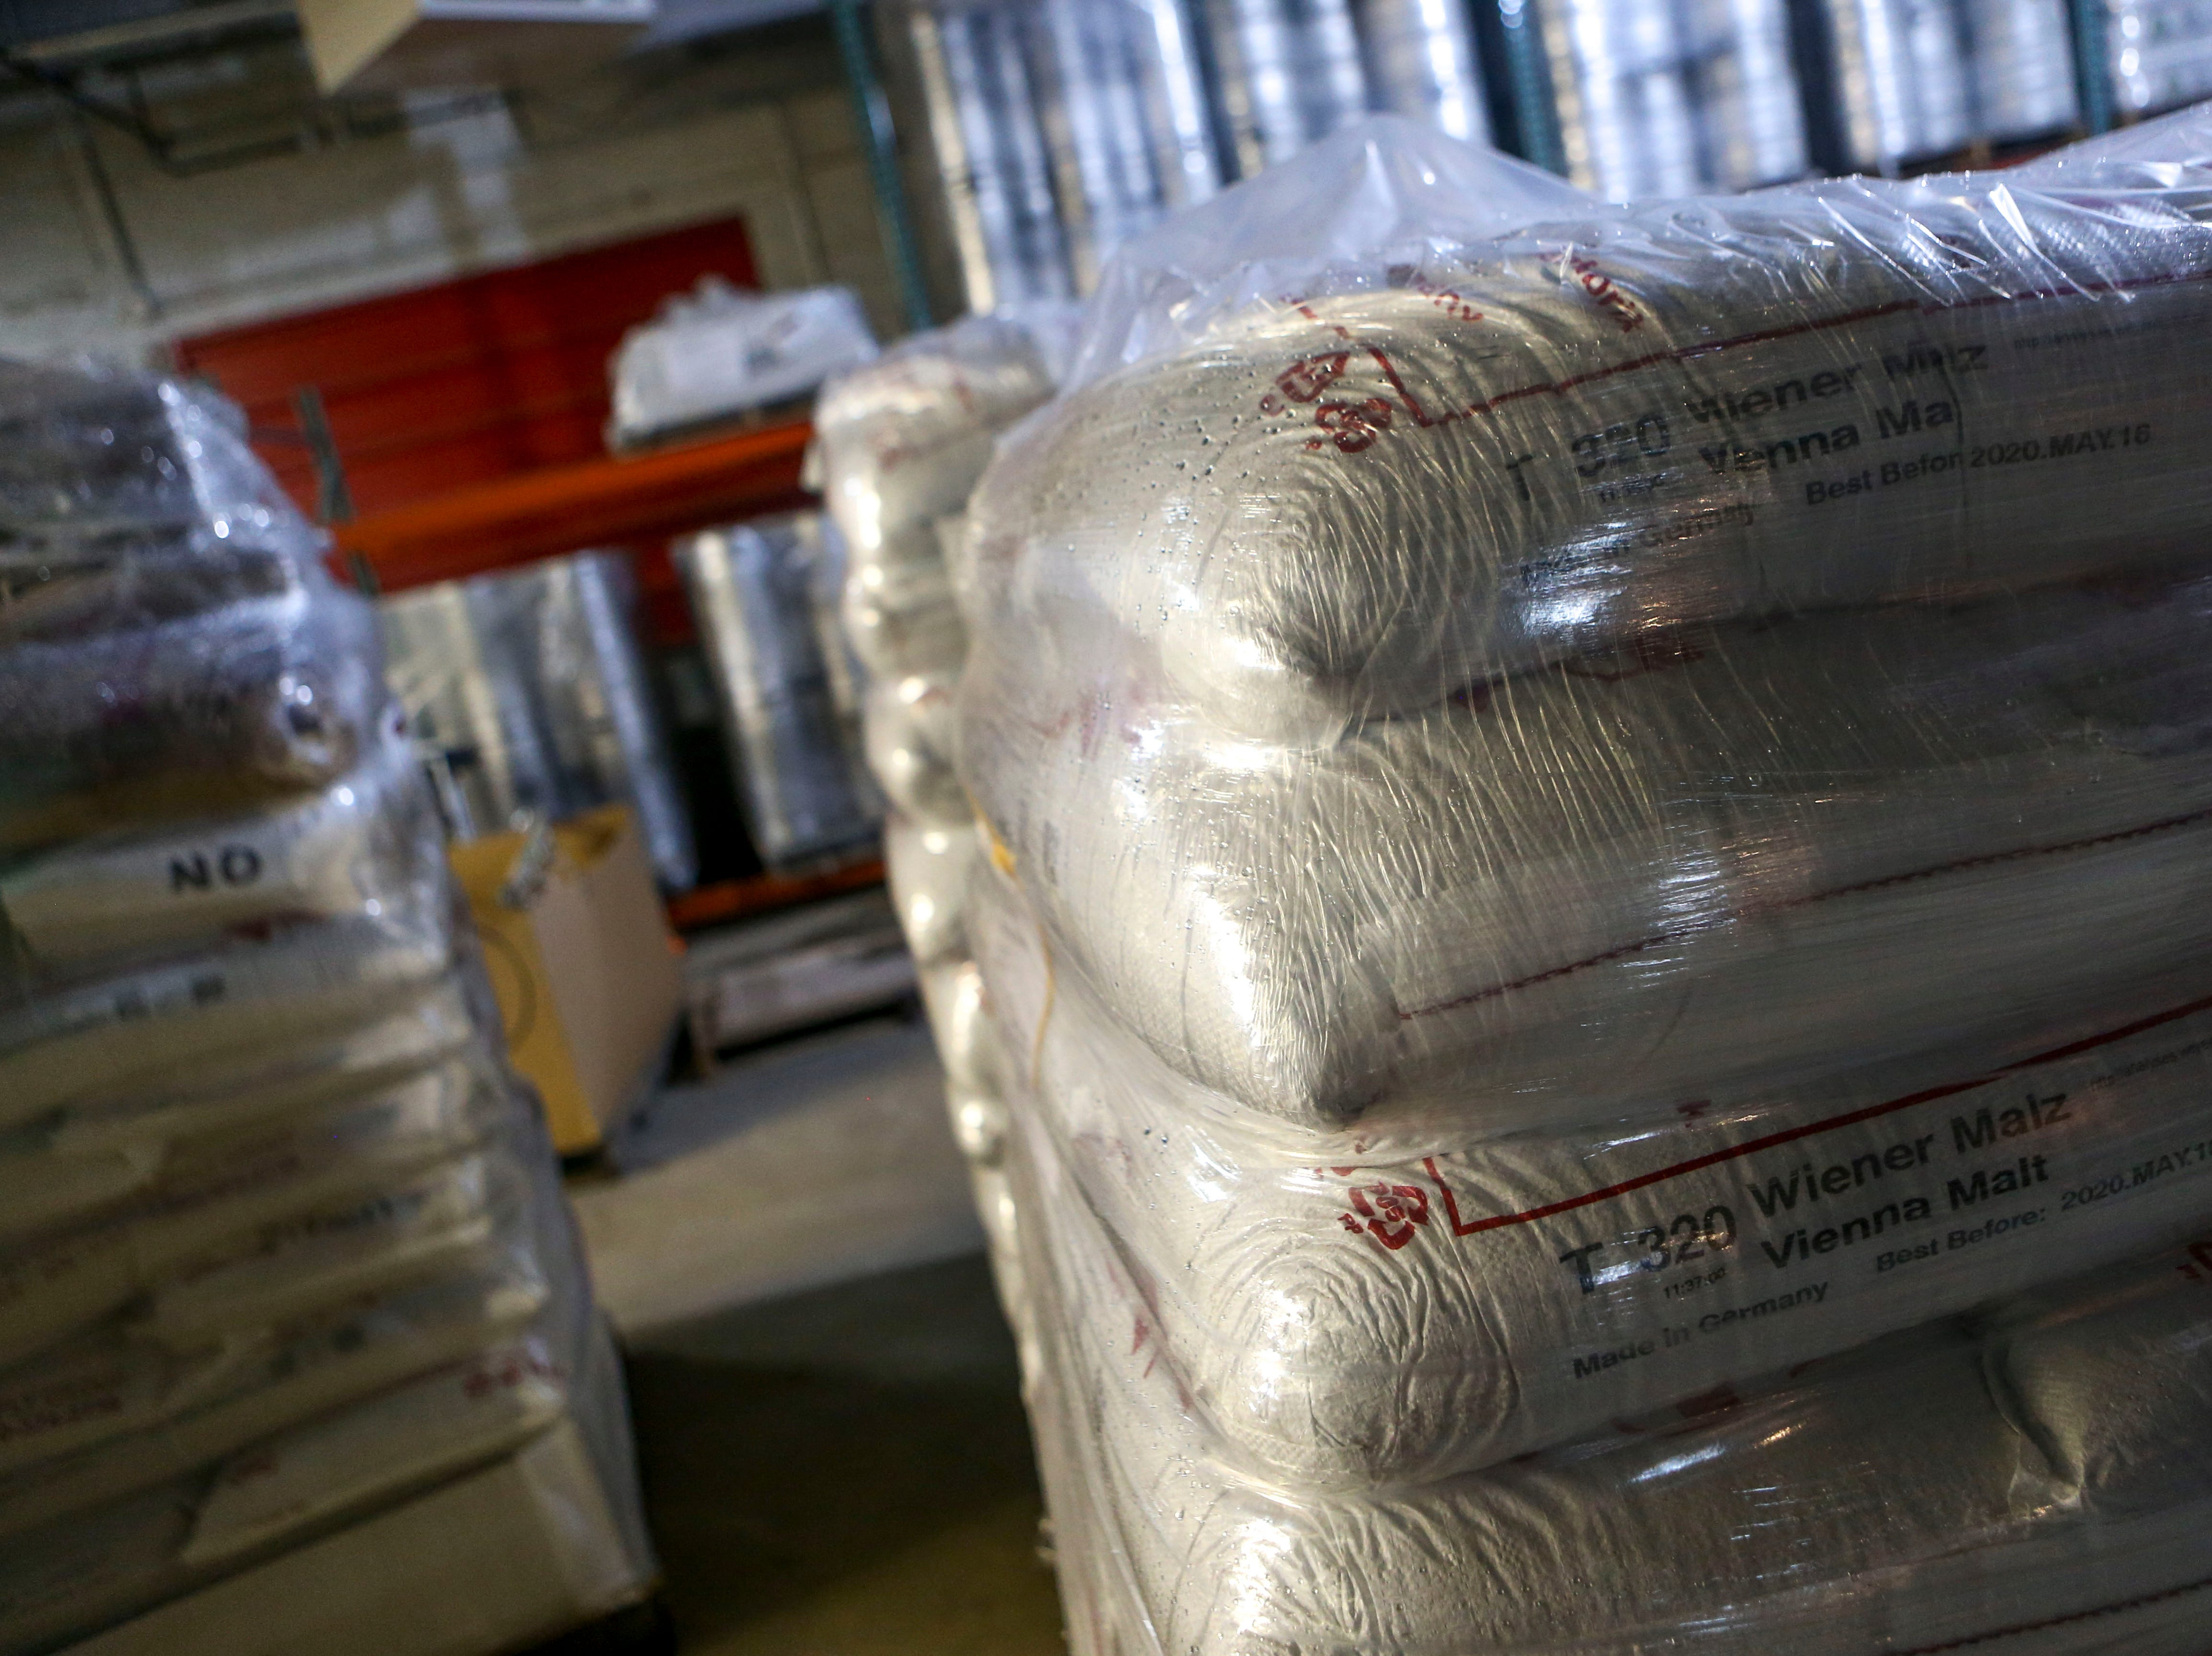 Malts can be seen in large bags ready for brewing in the backroom at Hub City Brewing in Jackson, Tenn., on Wednesday, Feb. 6, 2019.